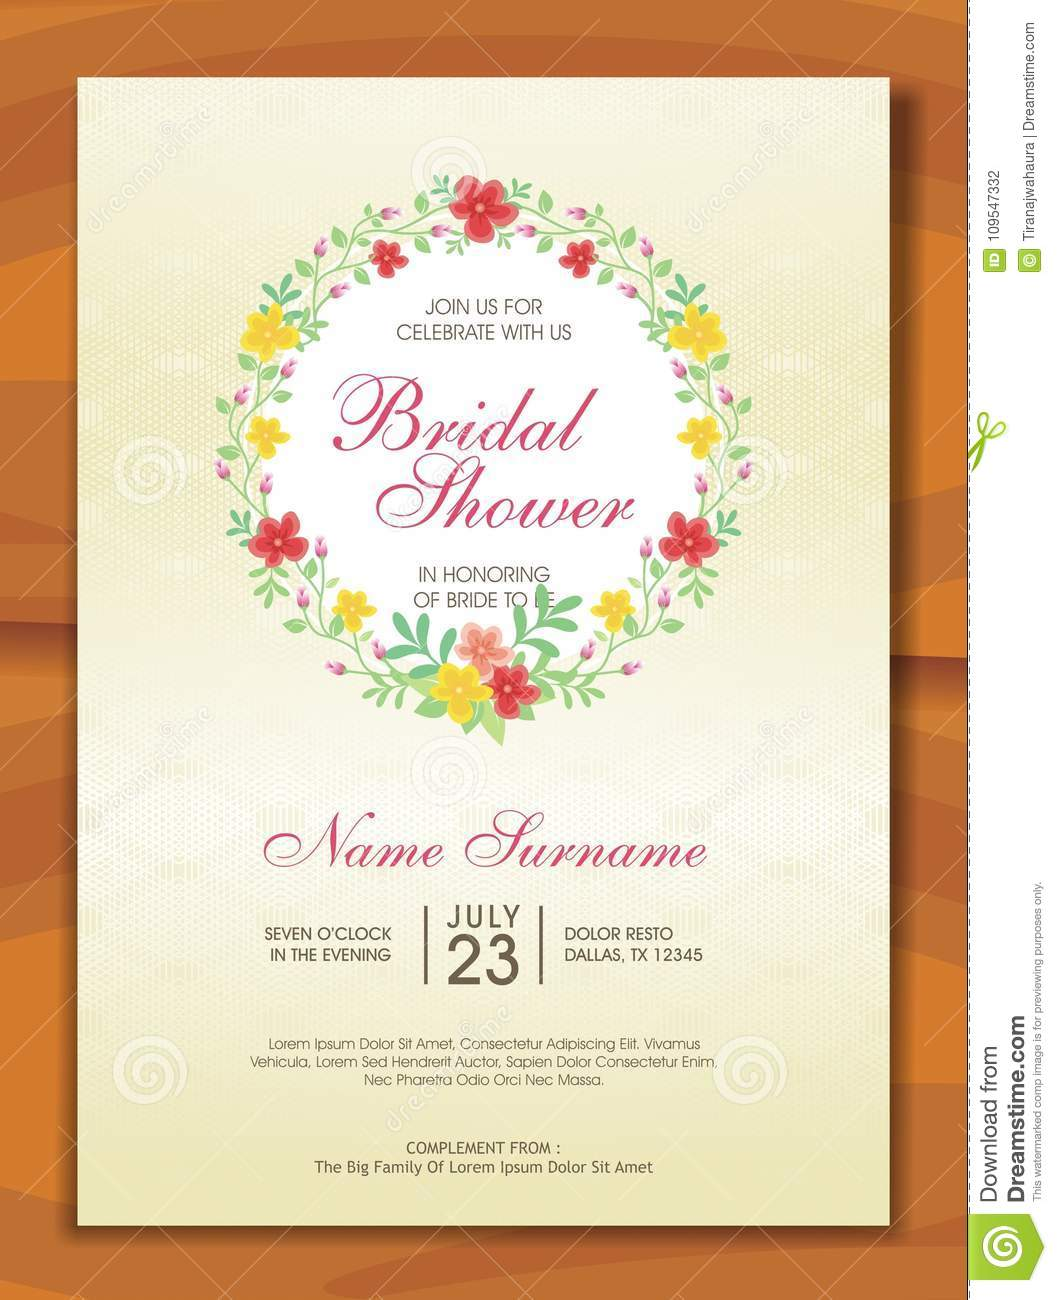 Bridal Shower Invitation With Lovely Design Stock Vector ...